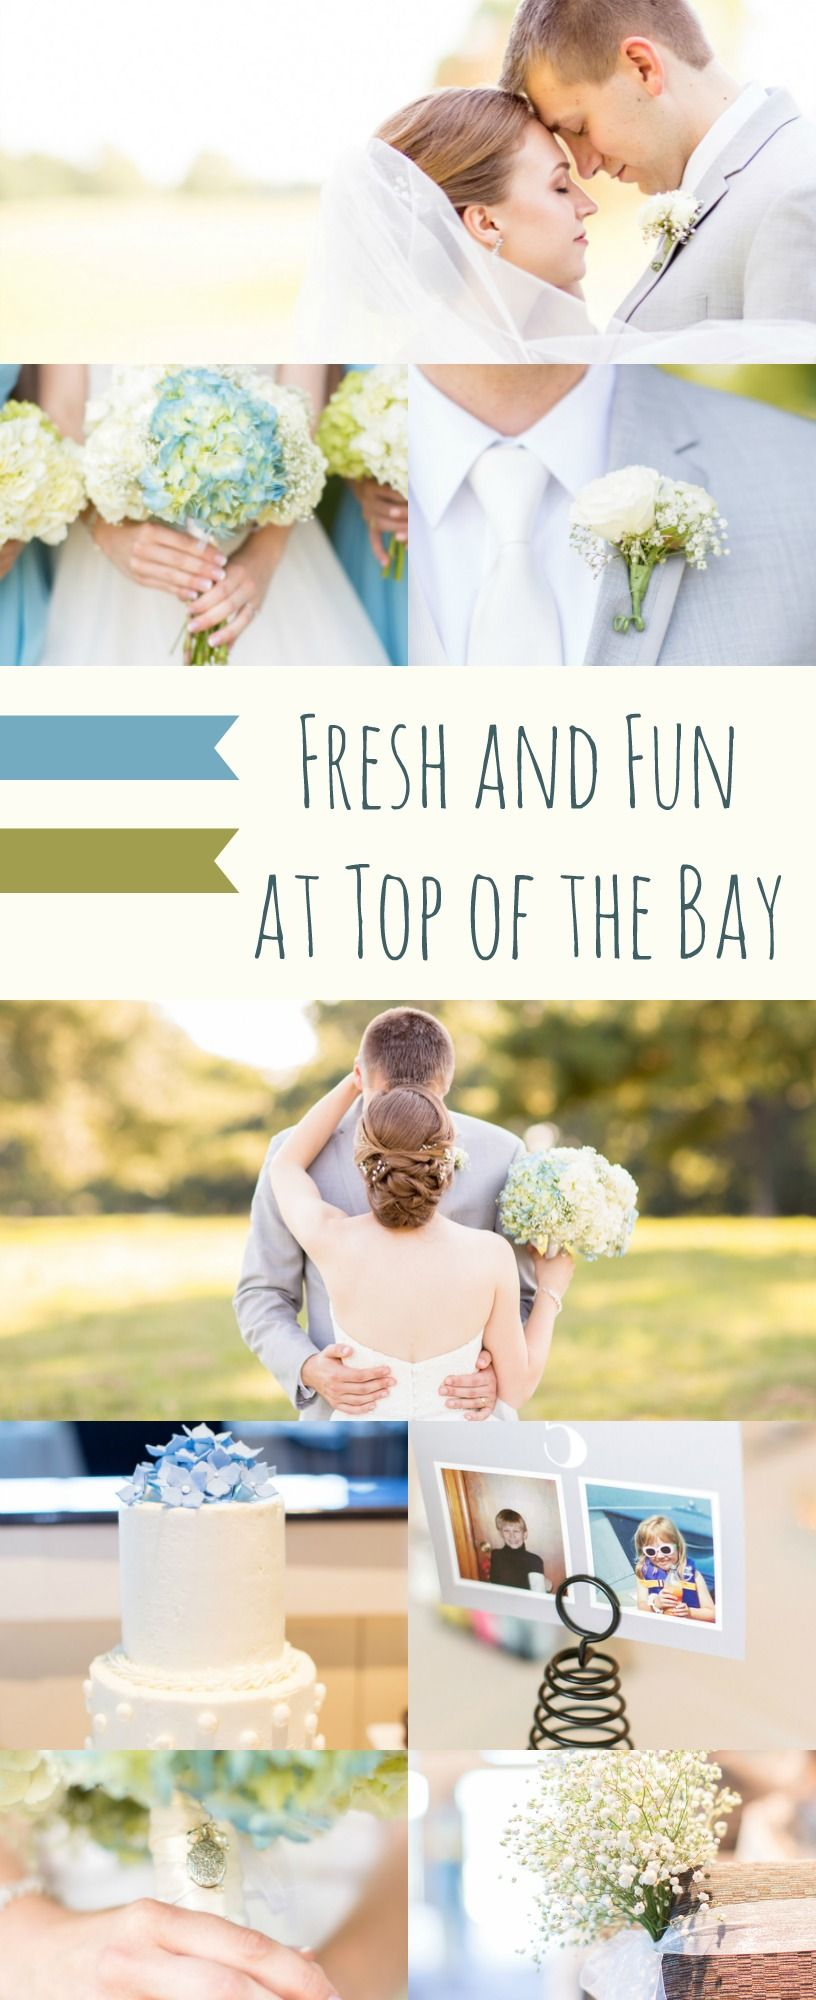 Fresh and Fun at Top of the Bay | Unique wedding themes, Unique ...